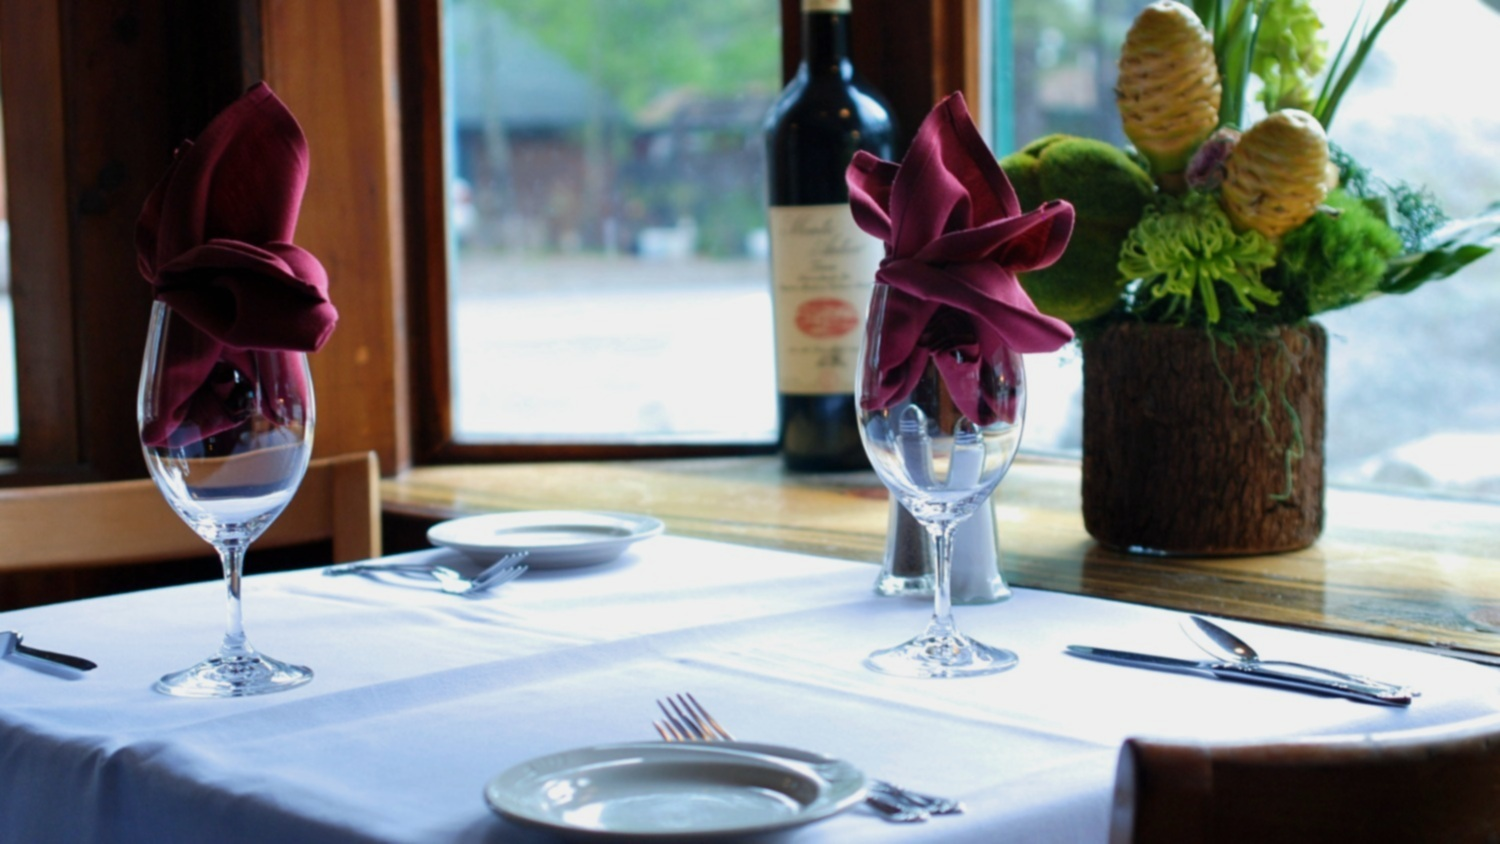 The most romantic table in Lake Tahoe - Table #4 is one of the best places to kiss in Northern California